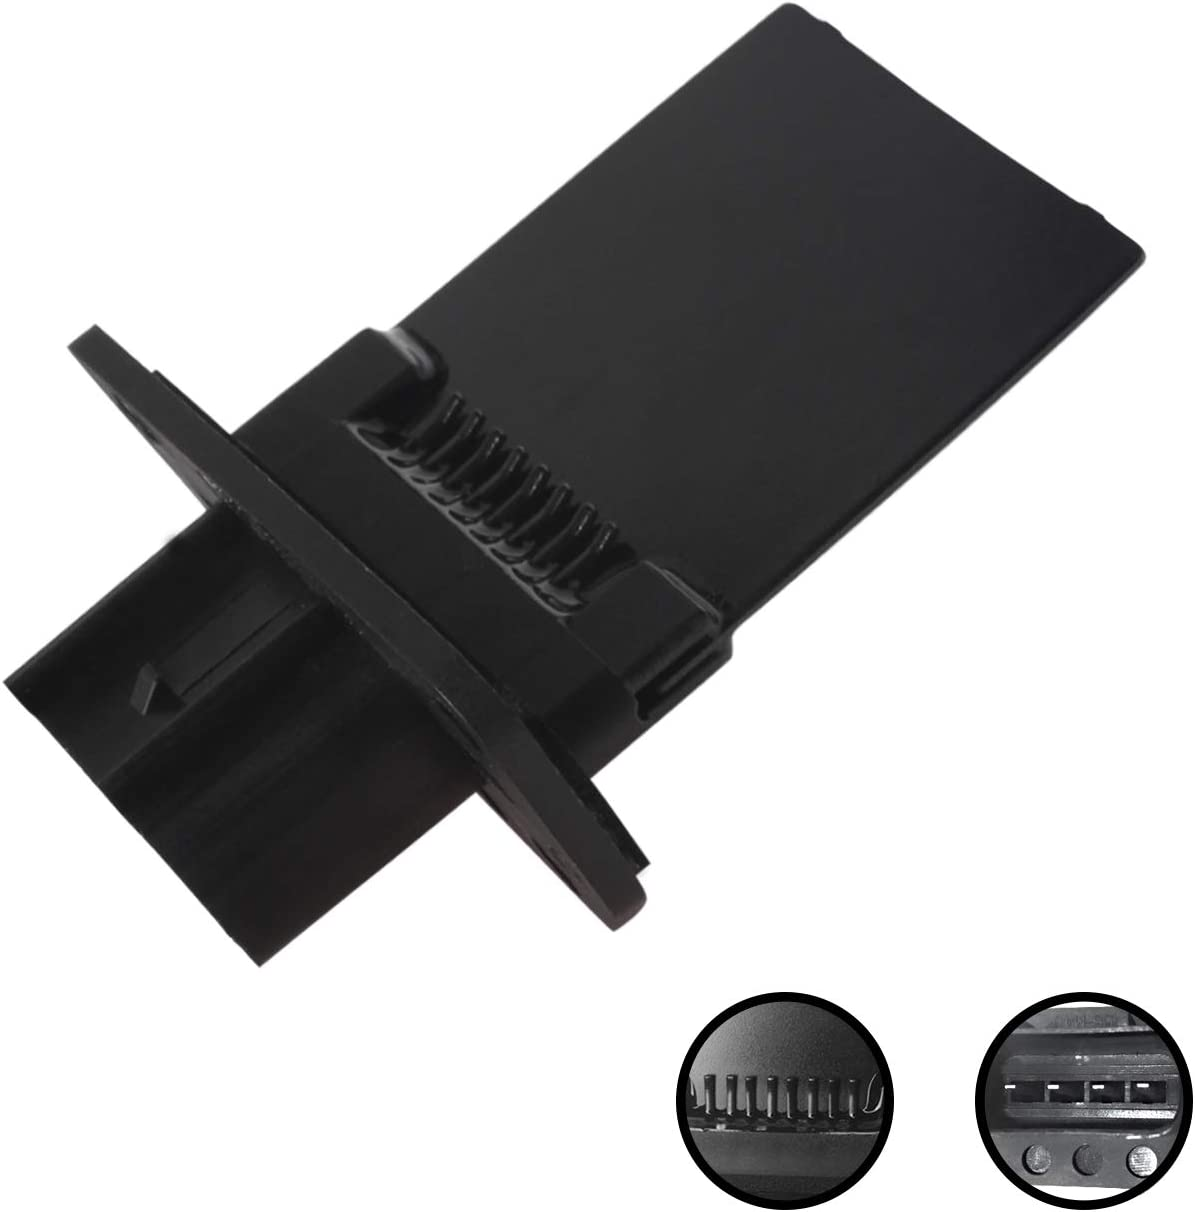 HVAC Fan Resistor Module Monrand YH-1715 3F2Z18591AA Blower Motor Resistor Kit with Harness Fits for Ford Escape Expedition F150 250 350 450 550 Lincoln Mark LT Mercury Mariner